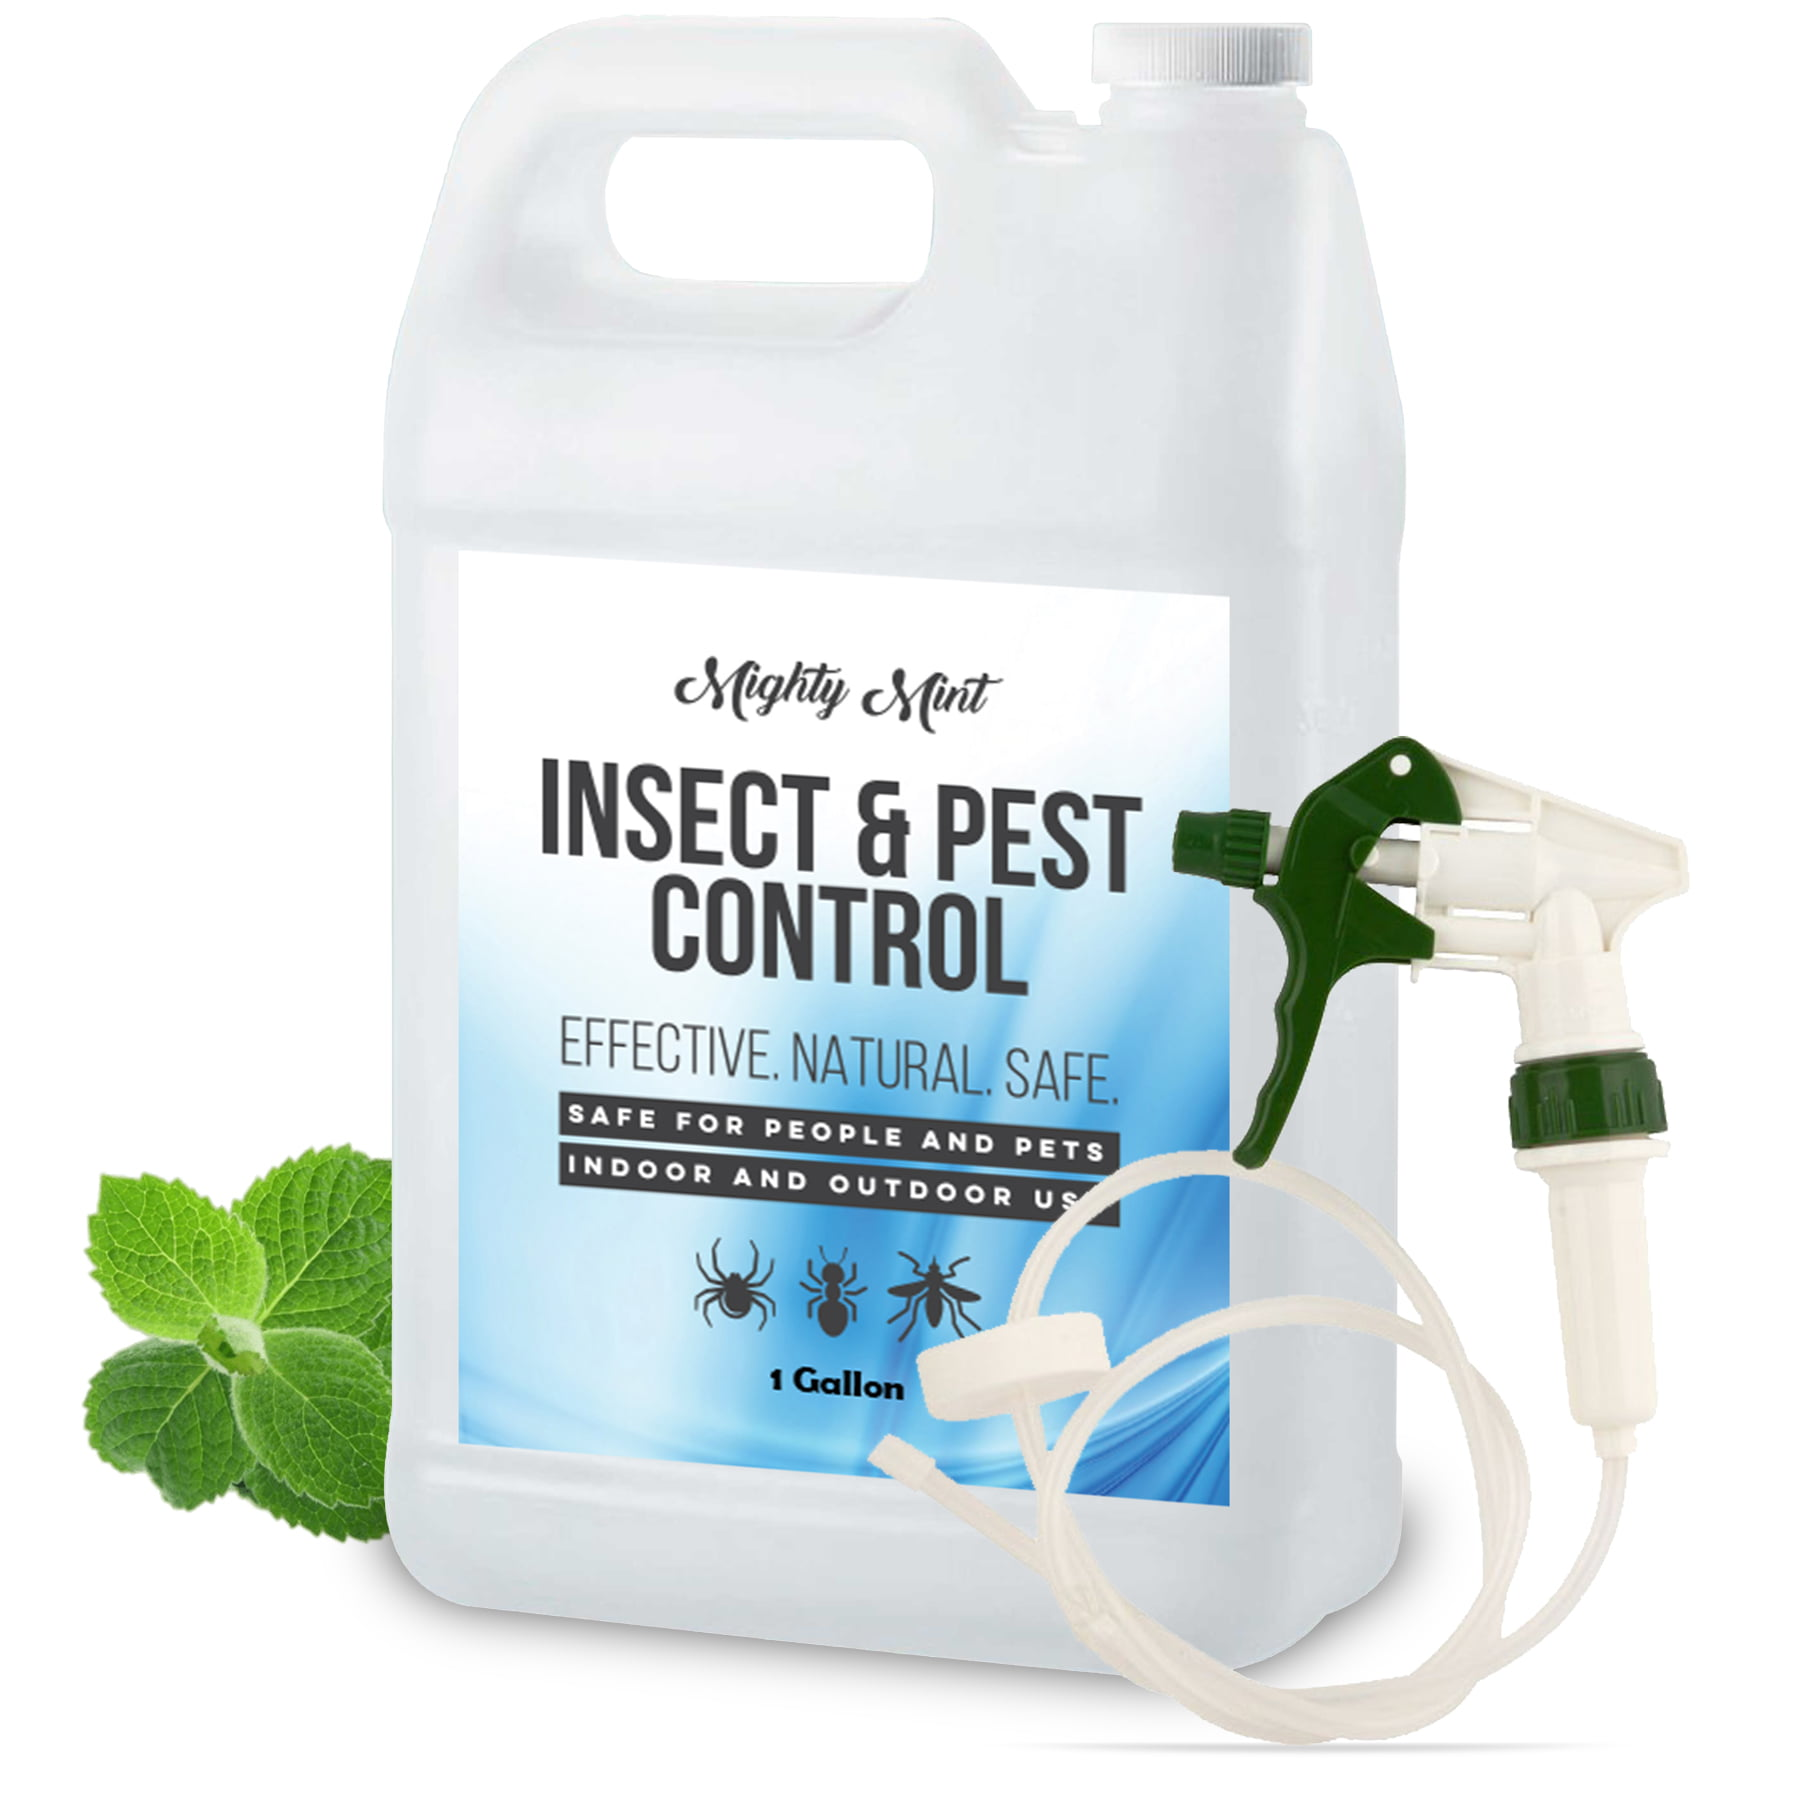 Mighty Mint Gallon 128 Oz Insect And Pest Control Peppermint Oil Natural Spray For Spiders Ants And More Non Toxic Walmart Com Walmart Com